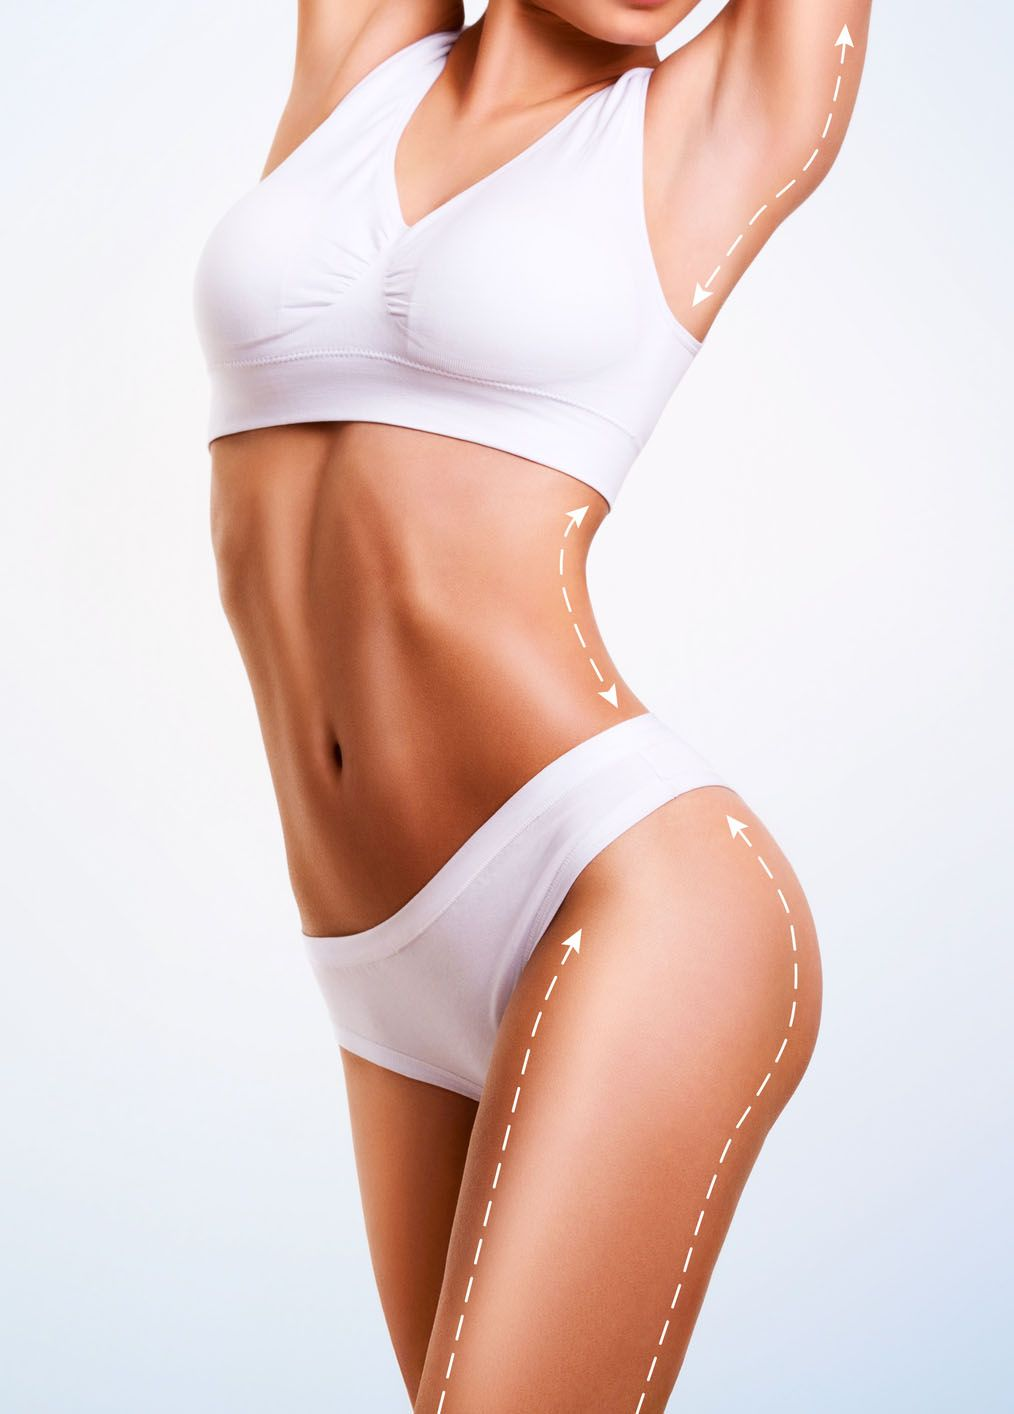 Female body, cosmetic surgery and skin liposuction.